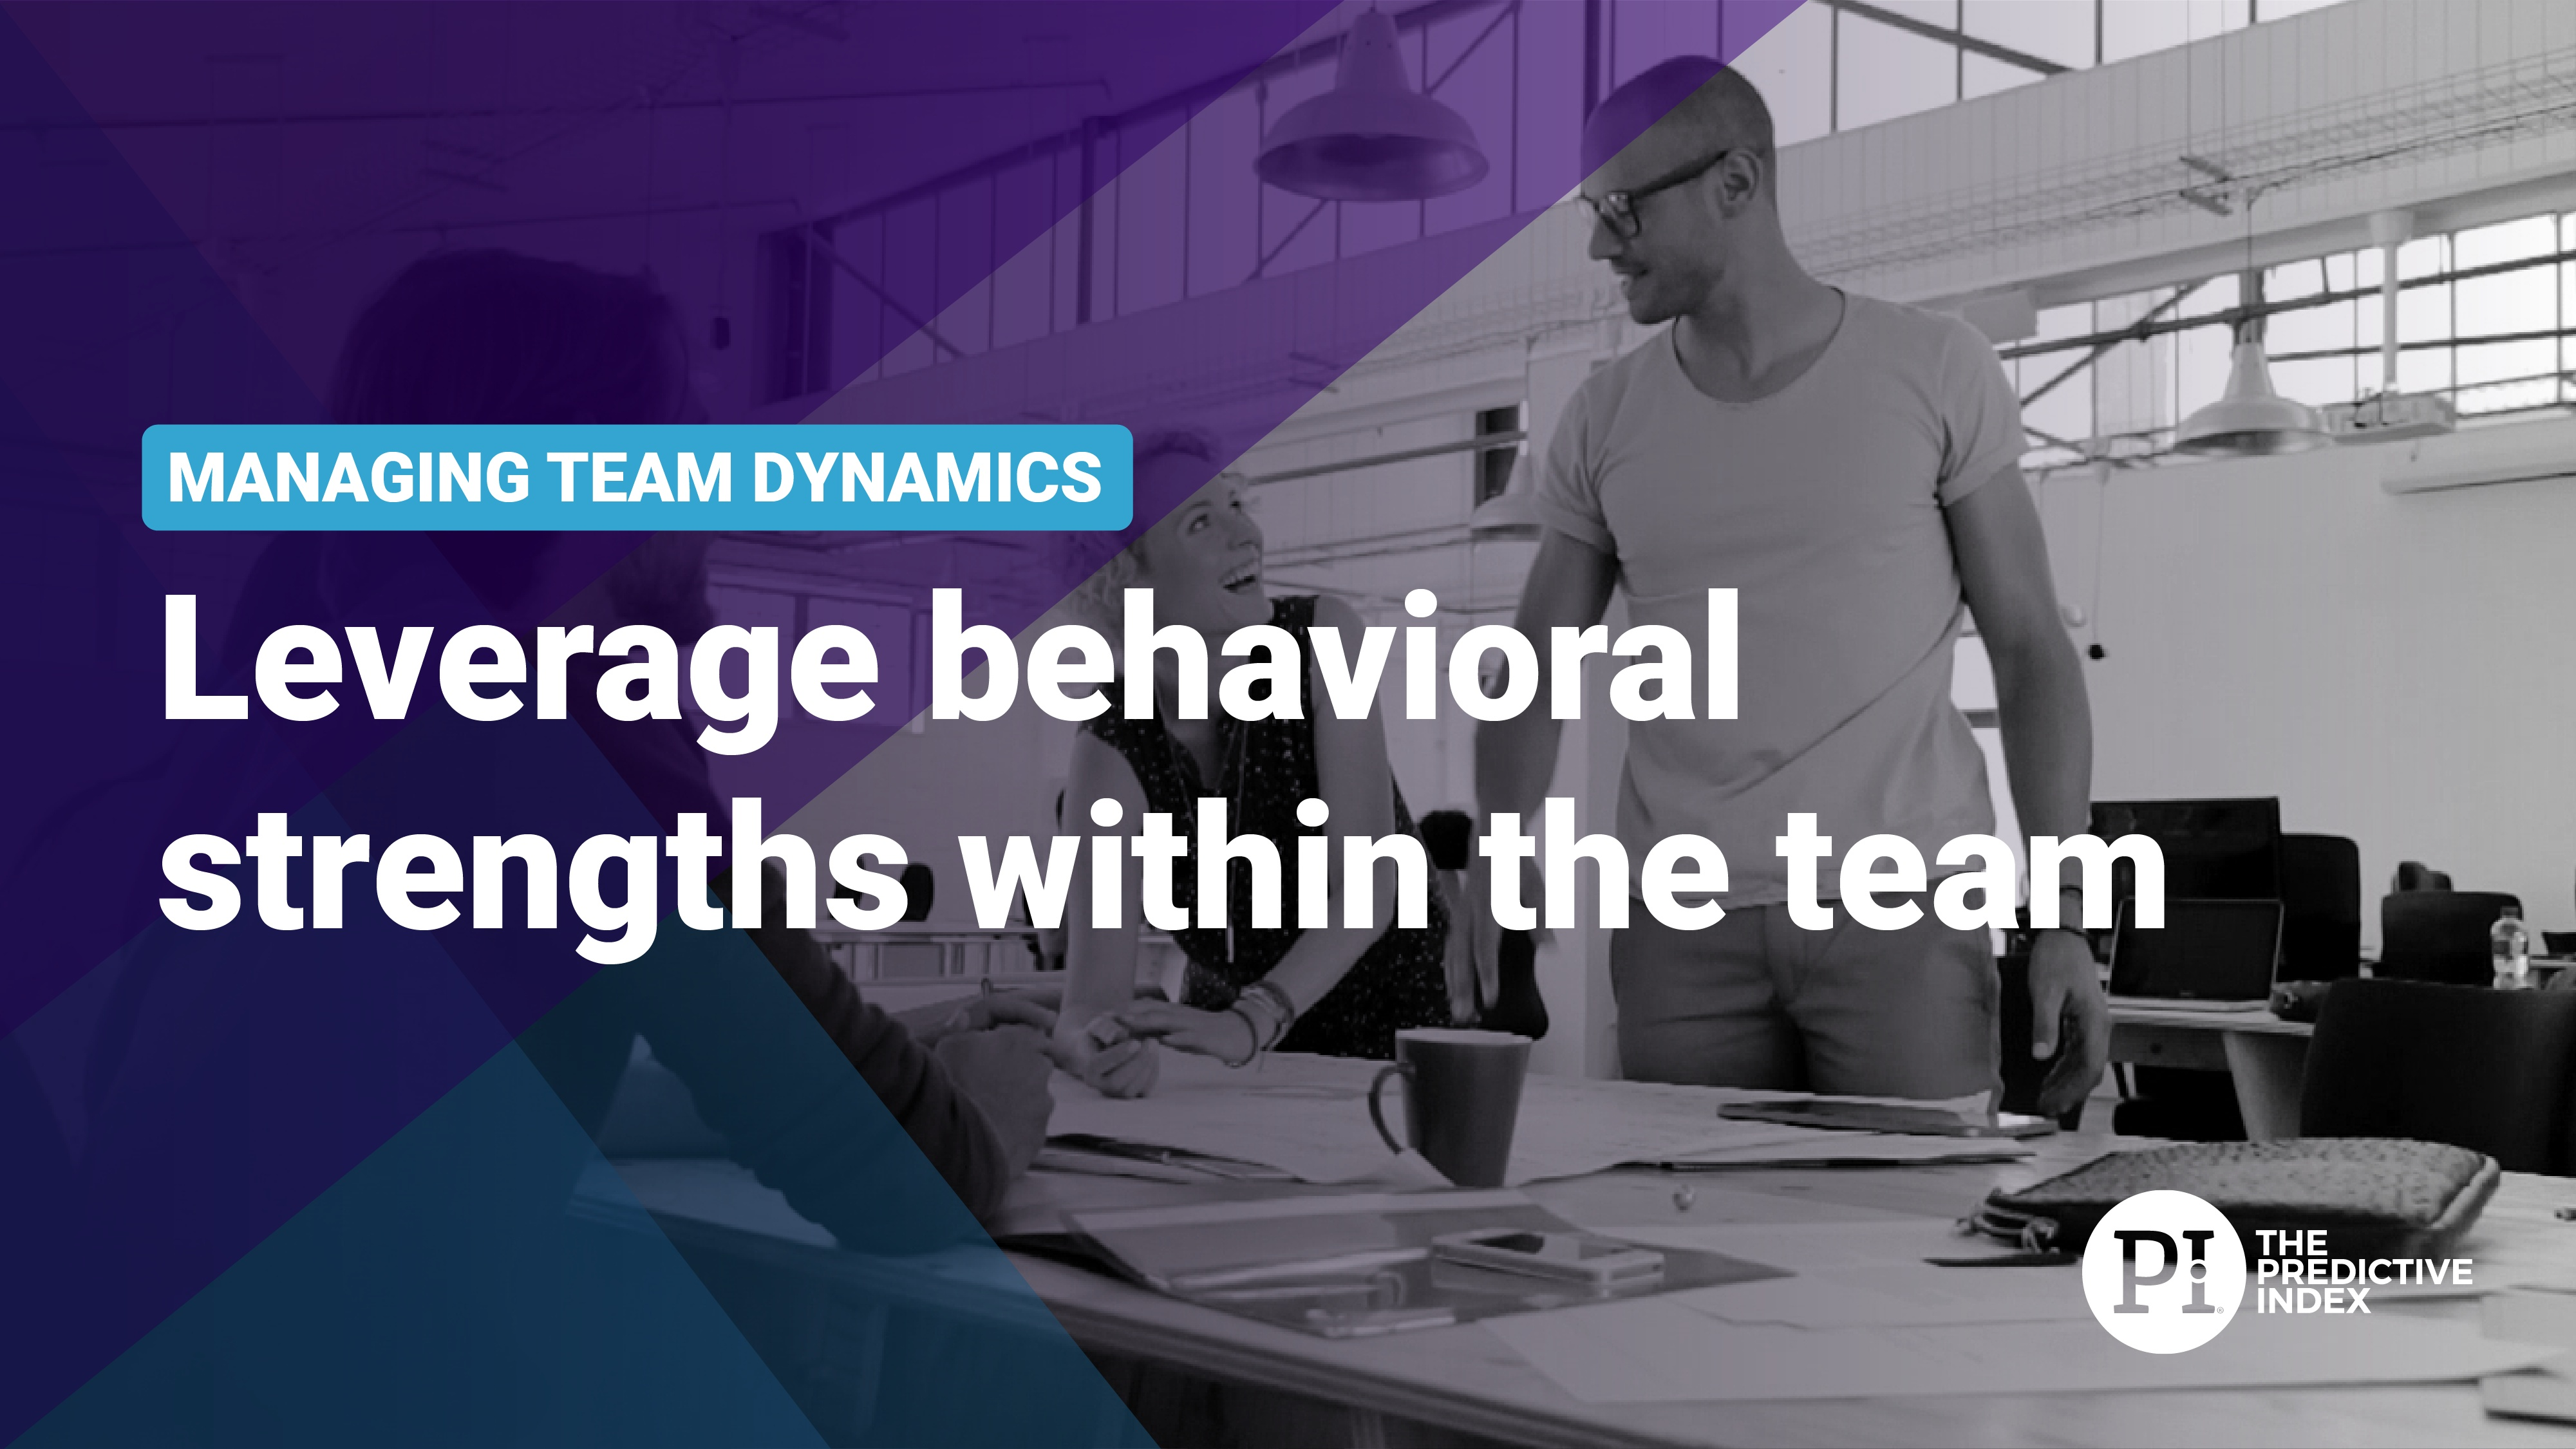 L3 - Leverage behavioral strengths within the team